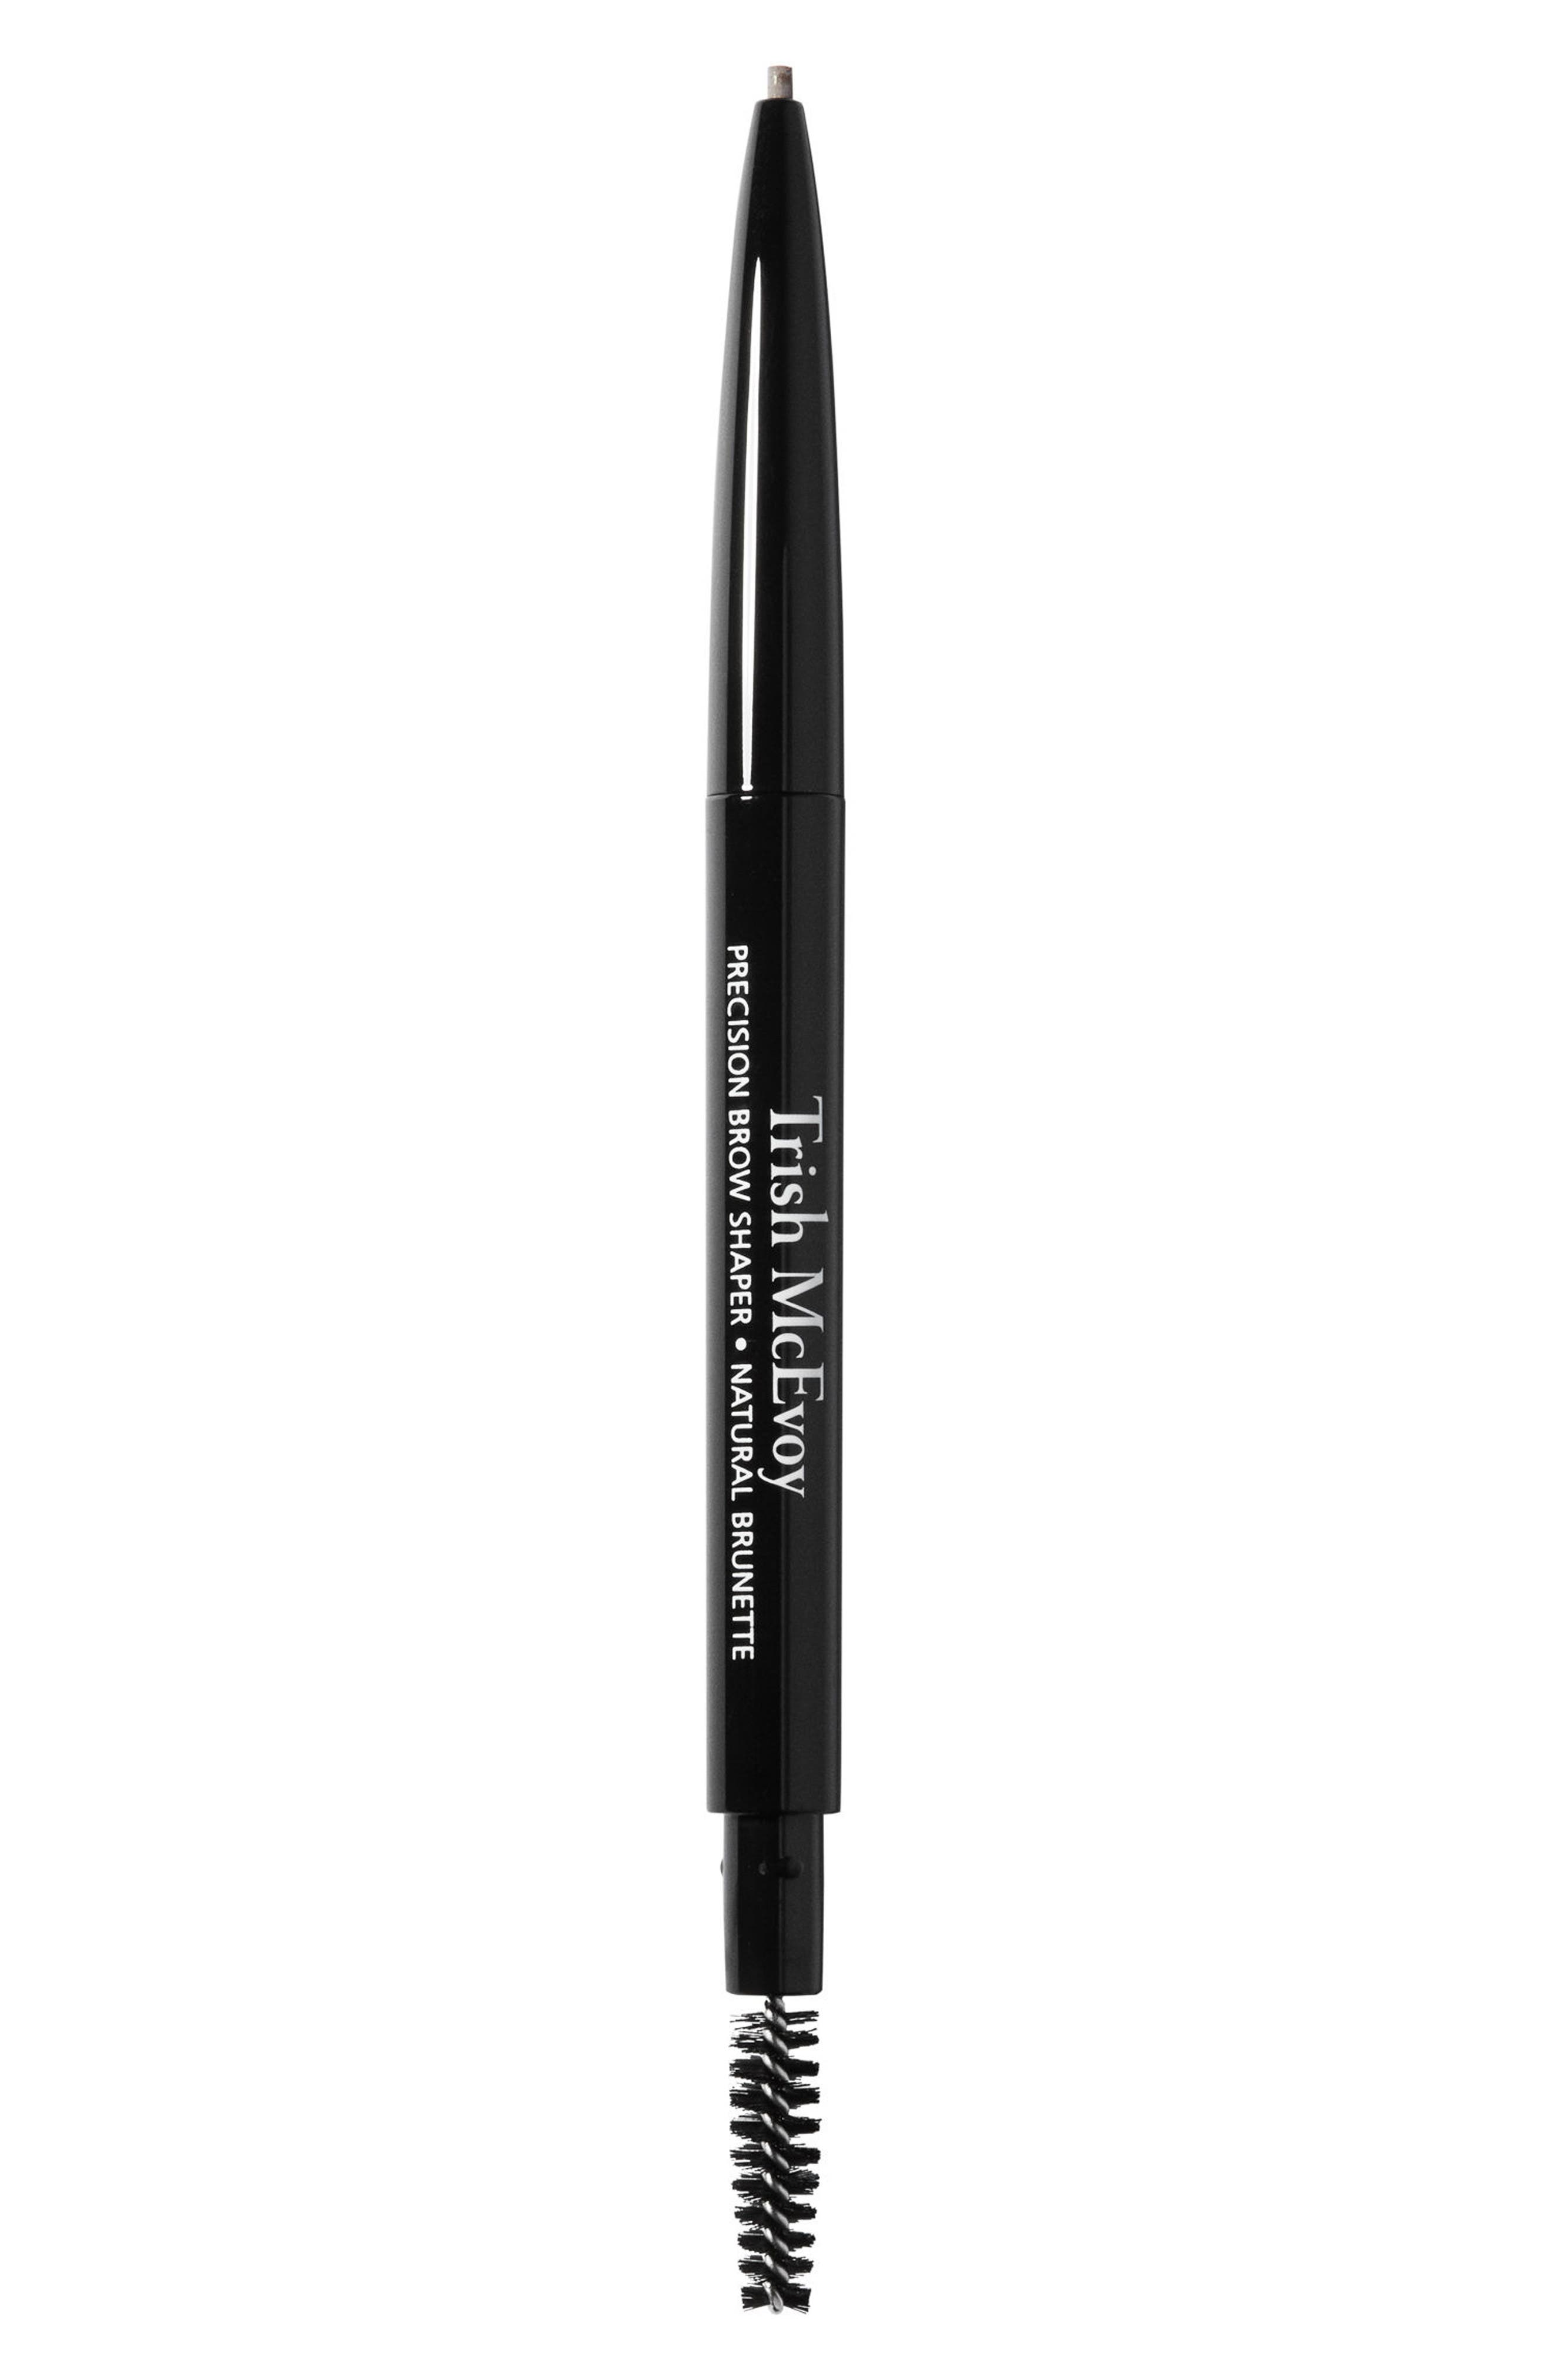 TRISH MCEVOY, Precision Brow Shaper, Main thumbnail 1, color, NATURAL BRUNETTE